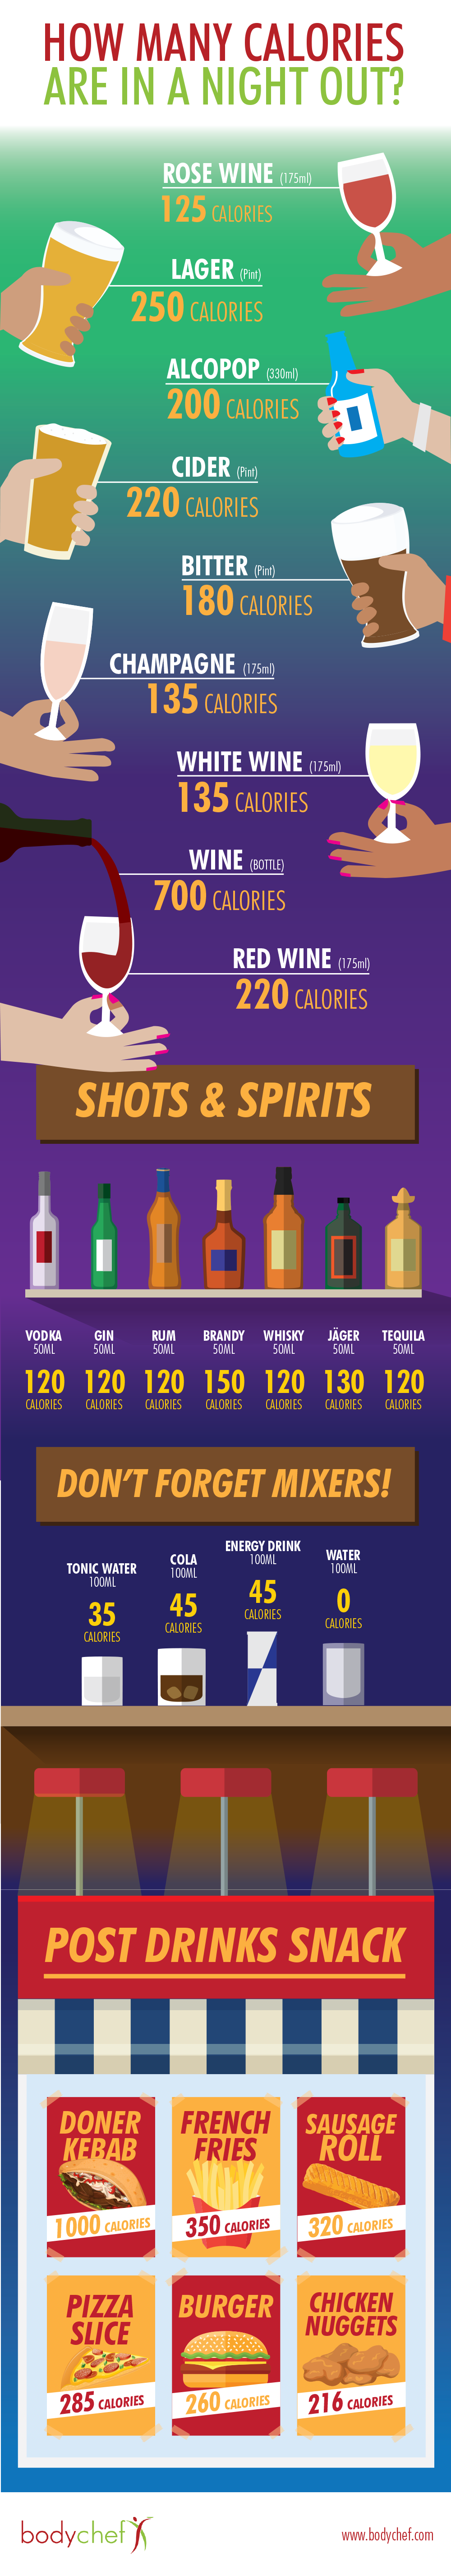 alcohol calories infographic